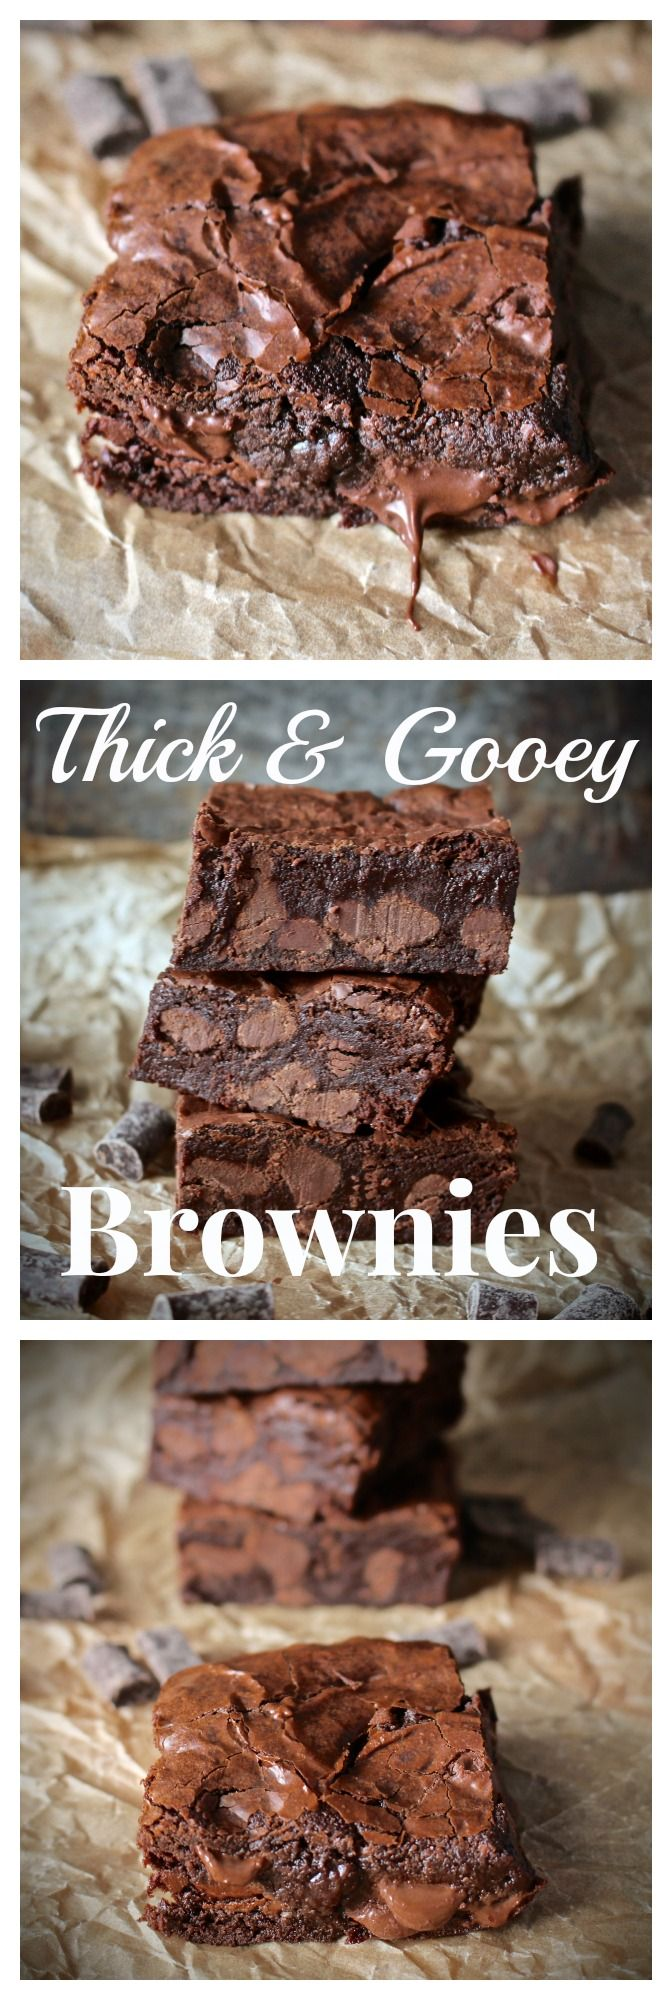 These were amazing!!  I used what I had at home, so I had to use extra flour-2tblsp-instead of cornstarch, and I used 1/2 bag PB chips, and 1/2 bag milk choc chips, but was still amazing!  Hubby said they were awesome, and WAY better than a box.  I've never made from scratch brownies, and I fond these to be super easy, super moist, and super rich-Richy Rich rich-but they totally hit the spot.  Definitely make again!